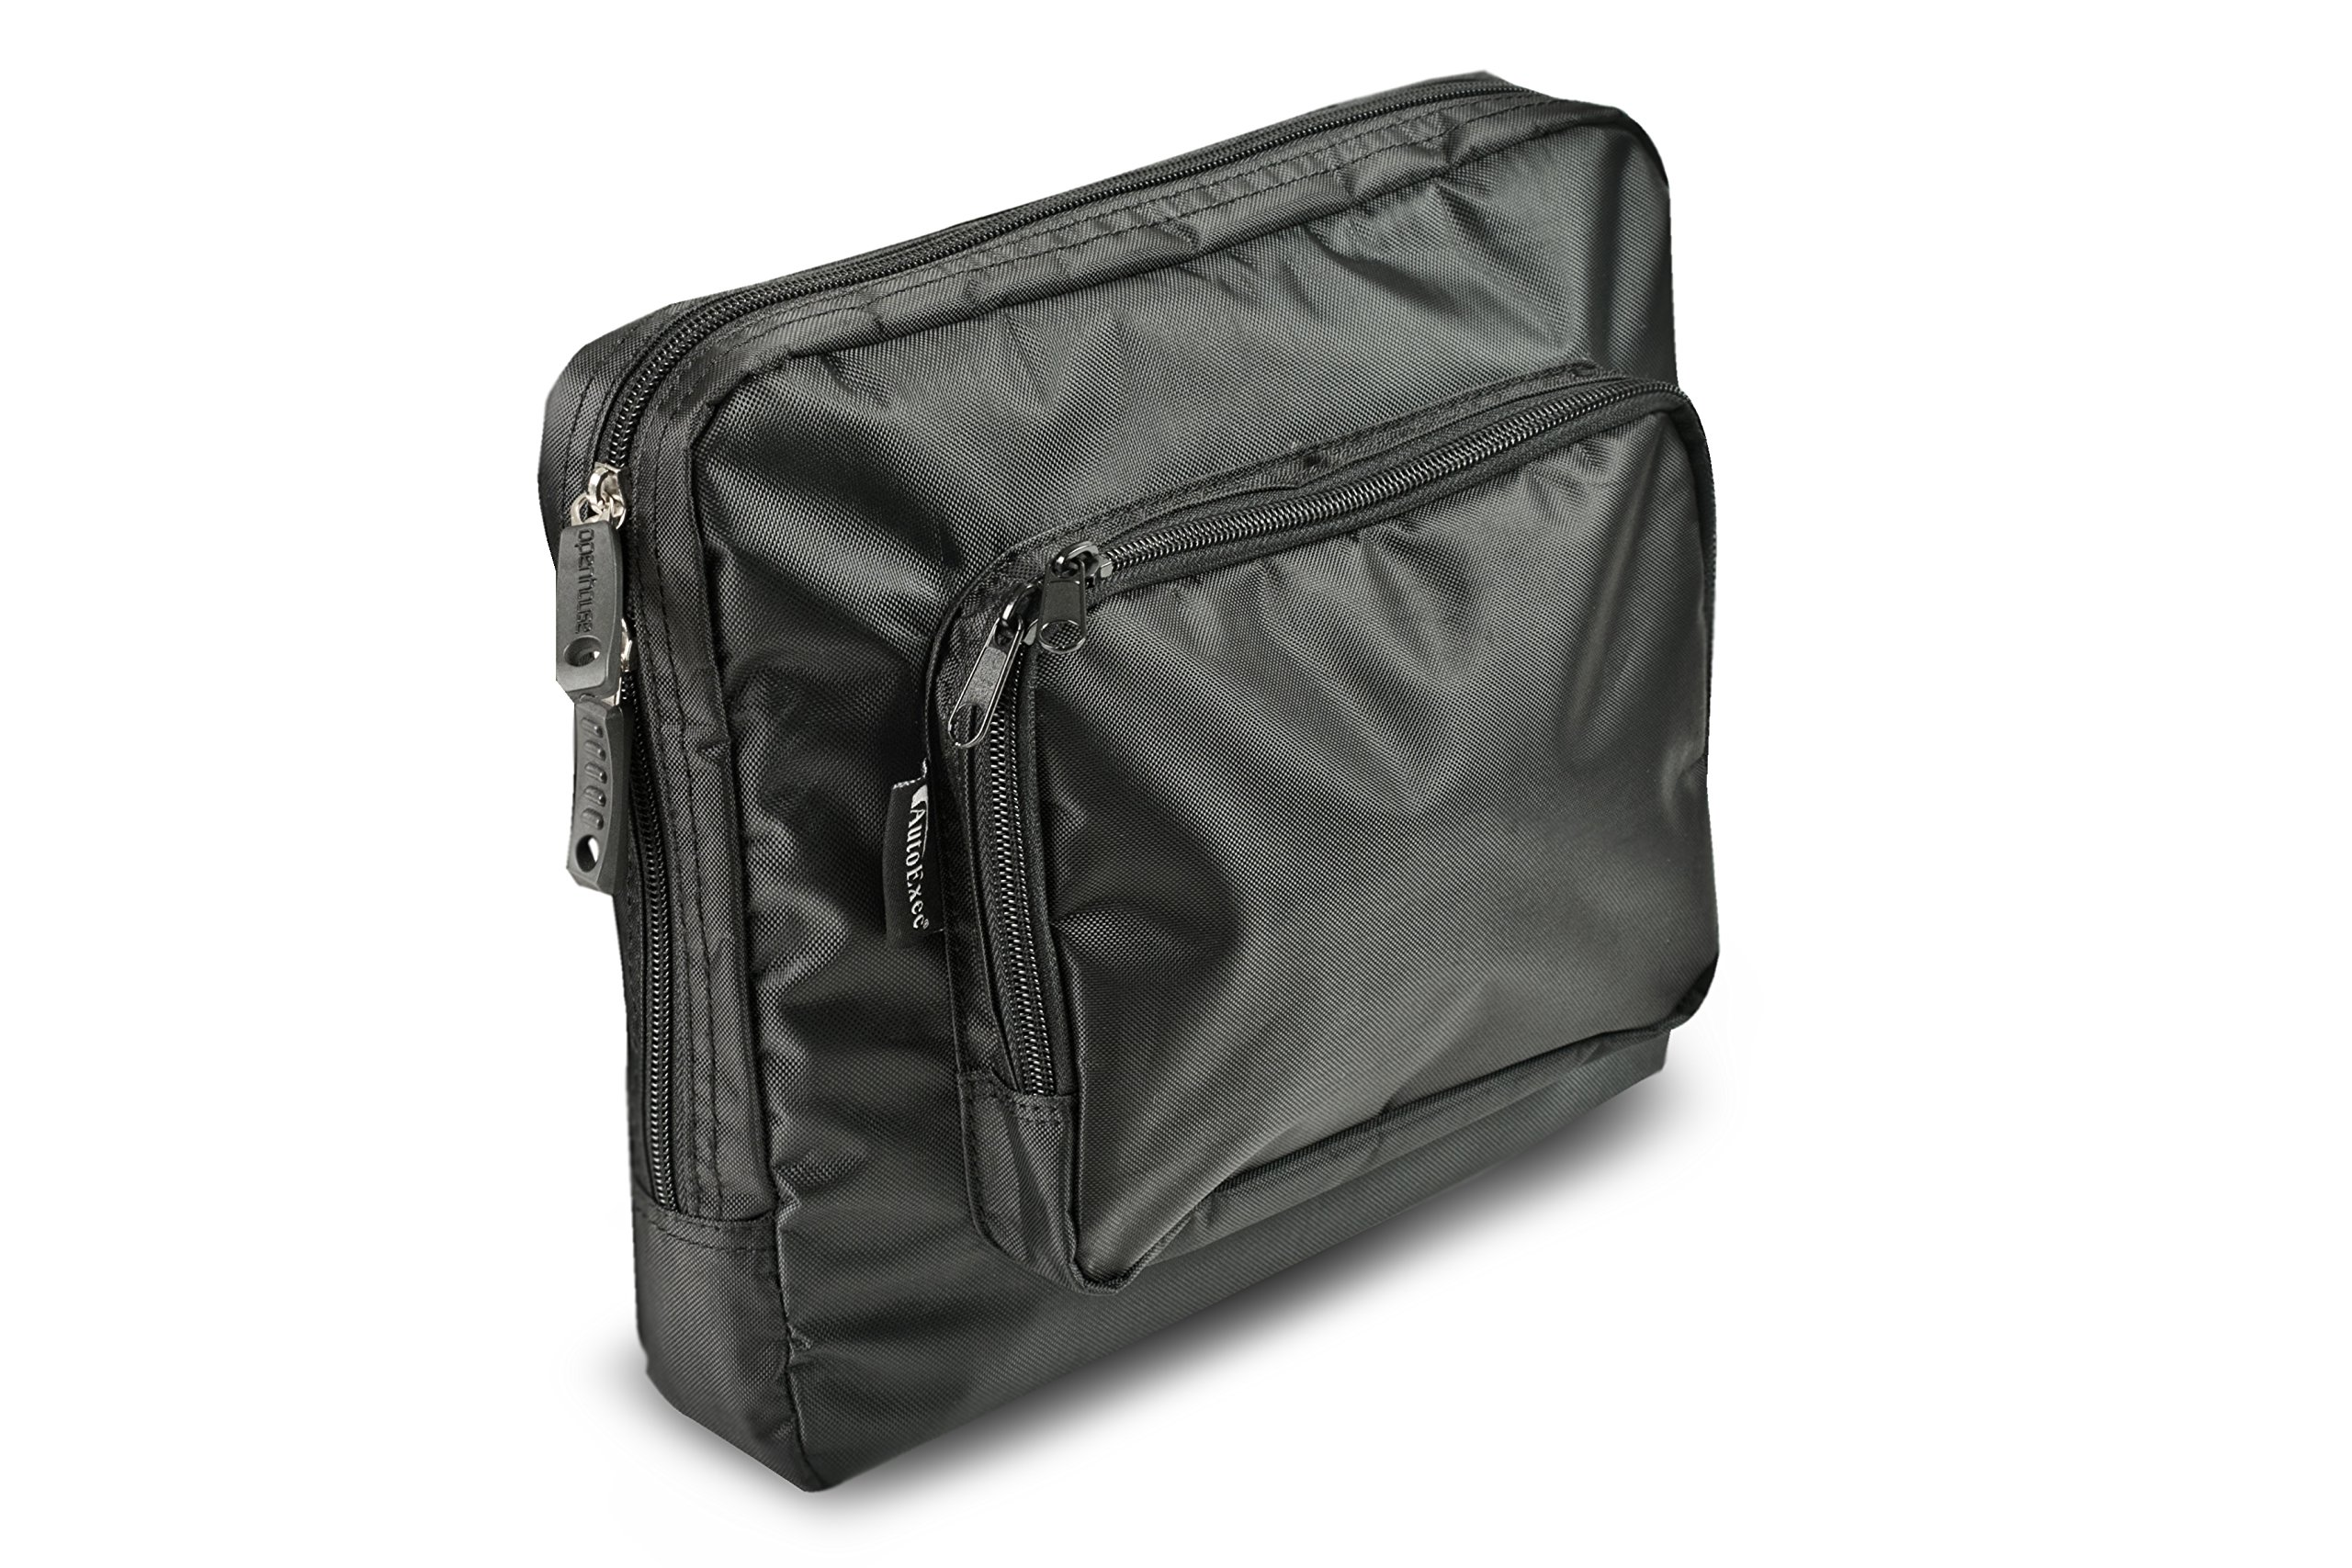 AutoExec AETote-09 Black/Grey File Tote with One Cooler and One Tablet Case by AutoExec (Image #23)